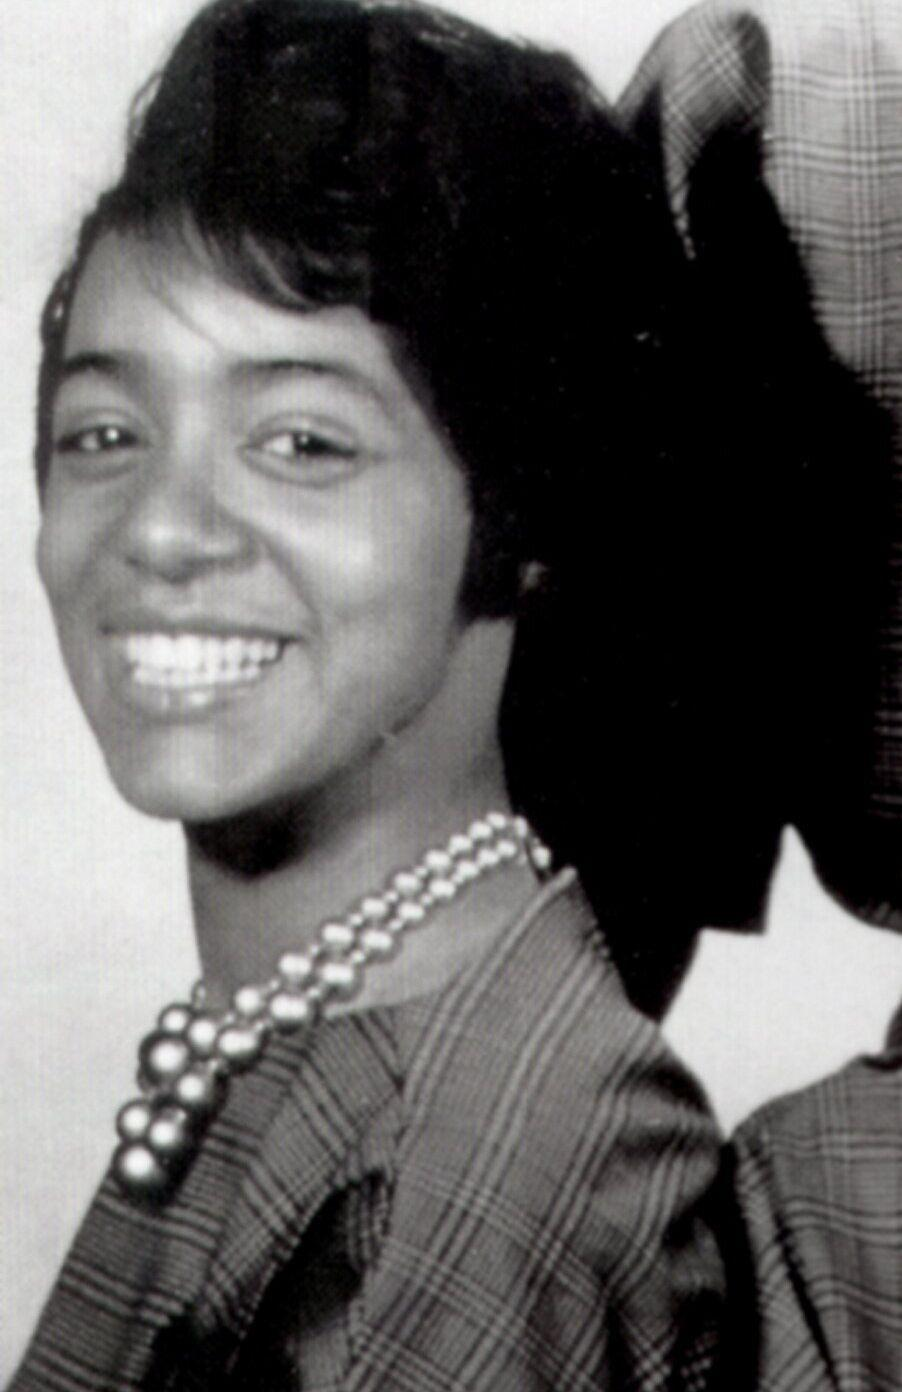 <strong>Barbara Martin (1943 - 2020)<br /><br /></strong>Barbara joined The Supremes in 1960, replacing departing singer Betty McGlown. She eventually left the group two years later.